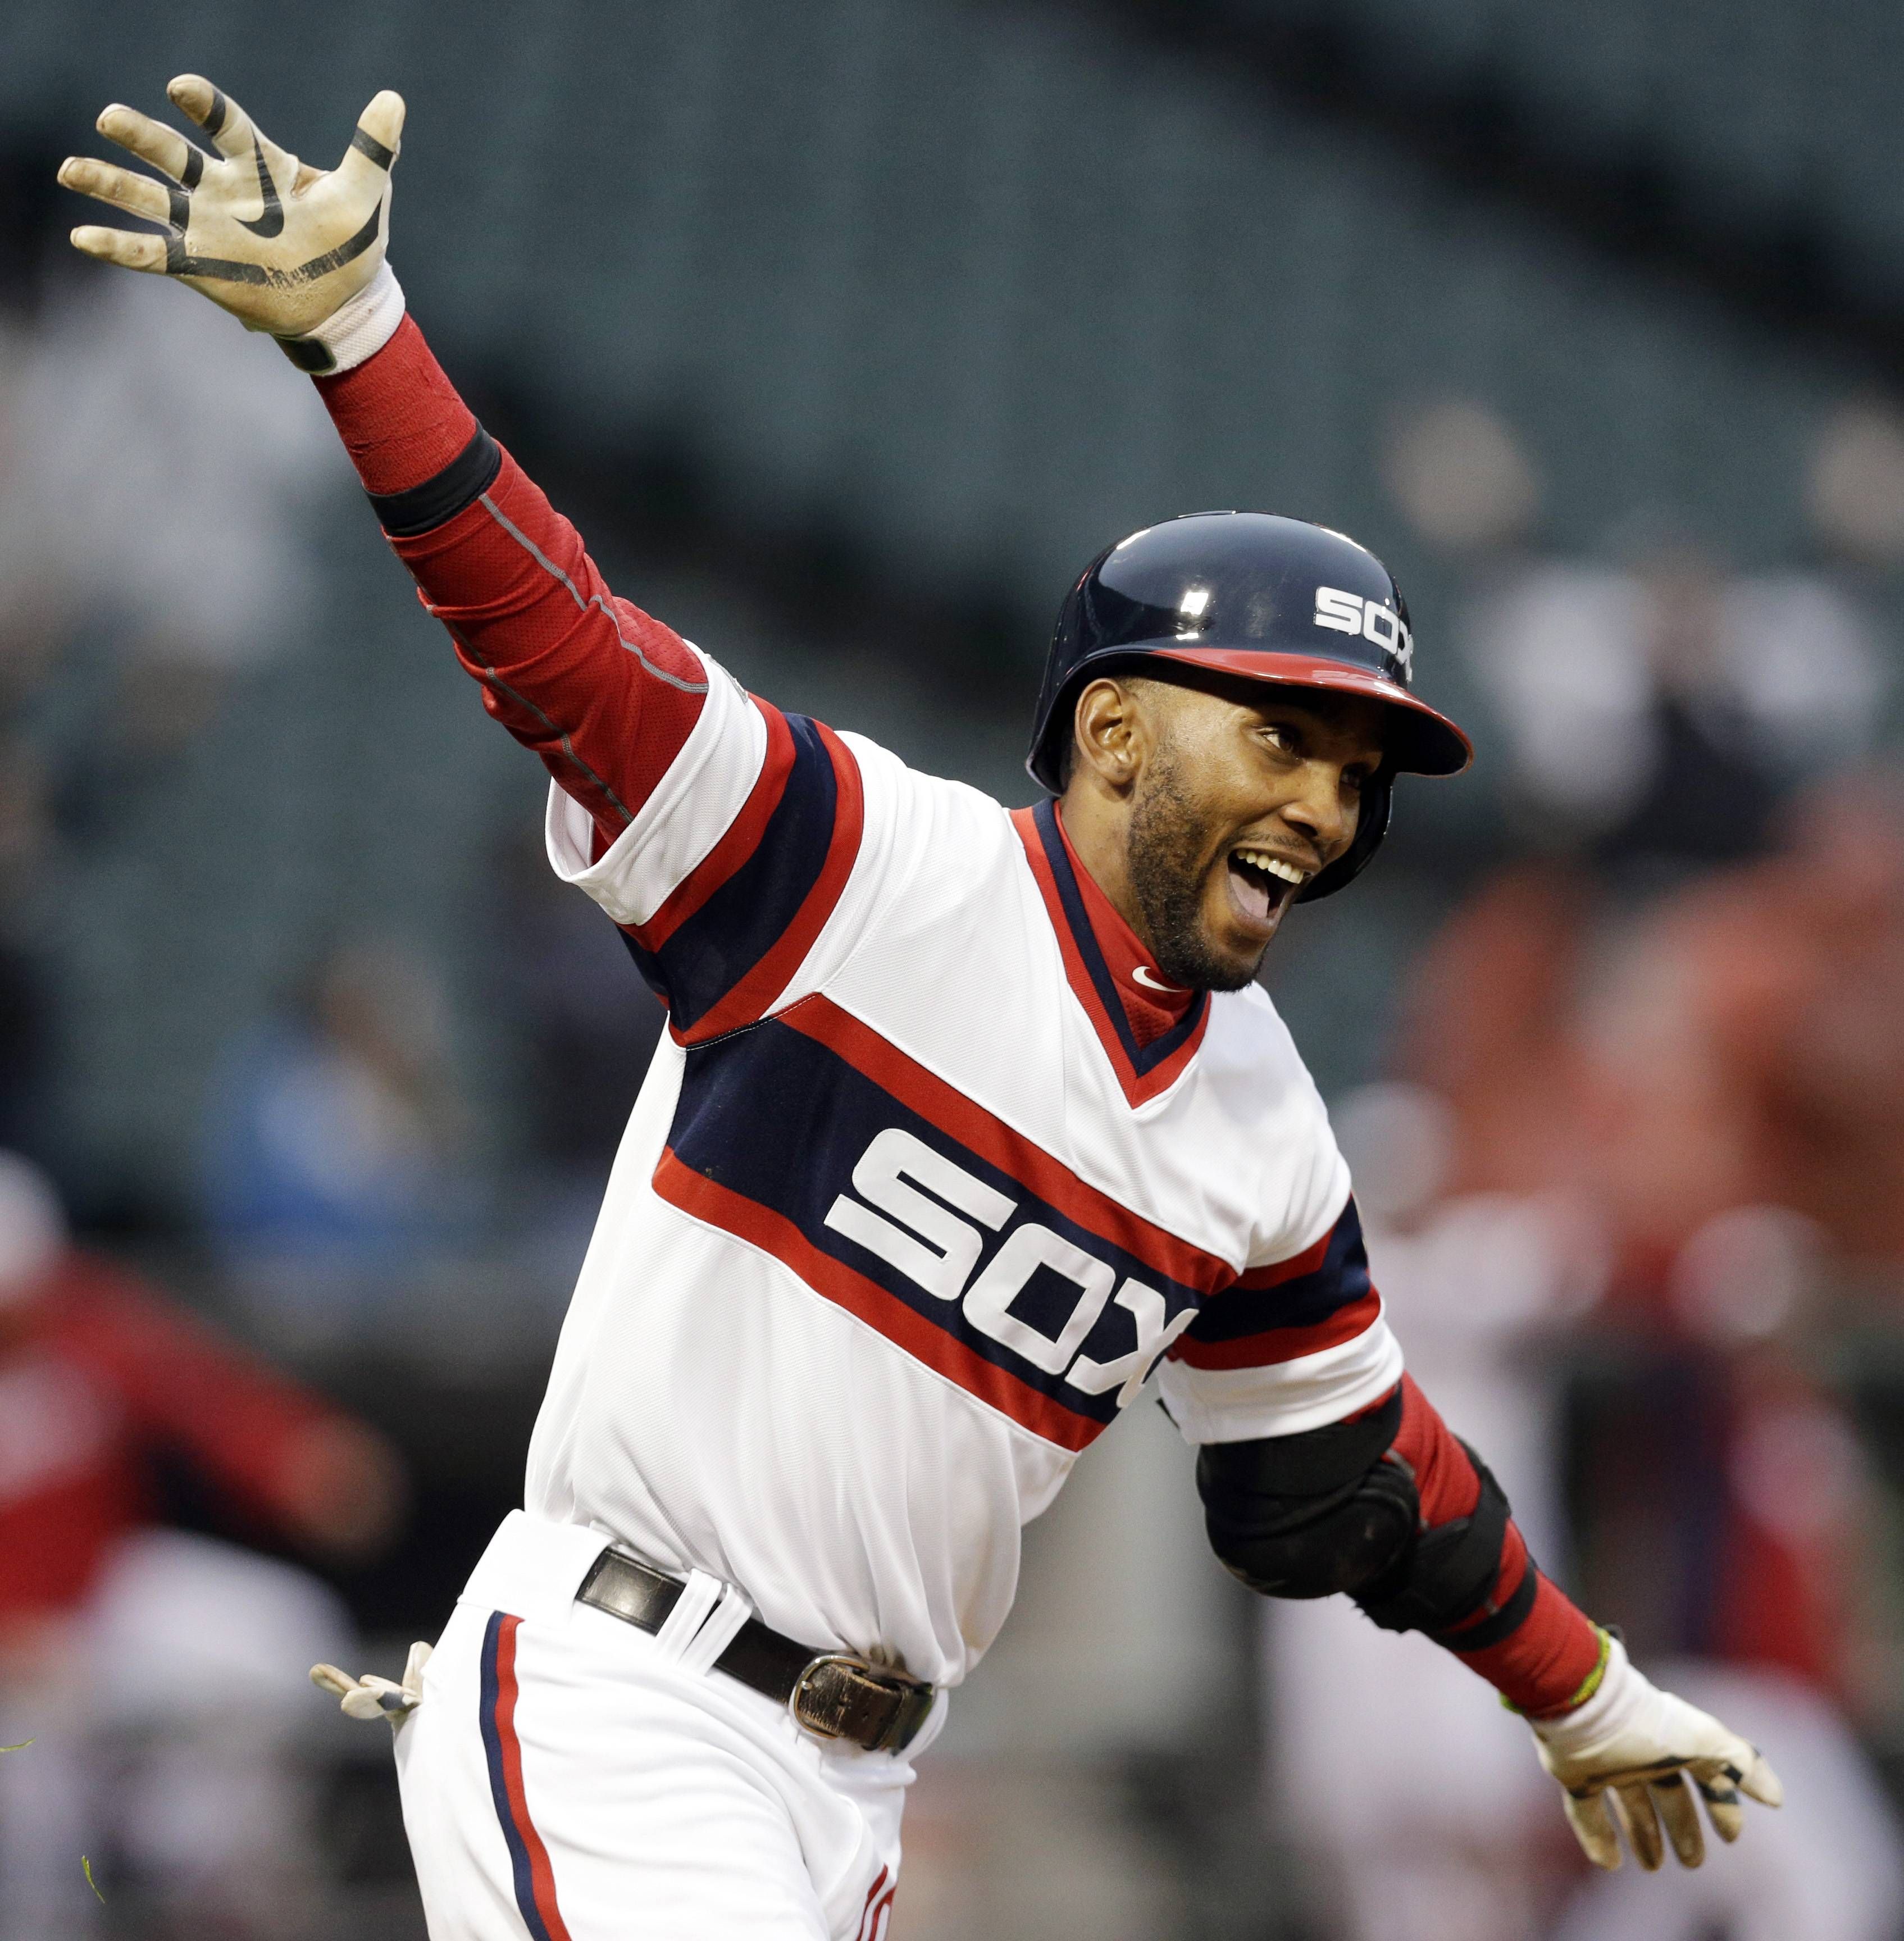 Chicago White Sox's Alexei Ramirez celebrates as he rounds the bases after hitting the game-winning two-run home run during the ninth inning of a baseball game against the Cleveland Indians in Chicago on Sunday, April 13, 2014. The White Sox won 4-3.